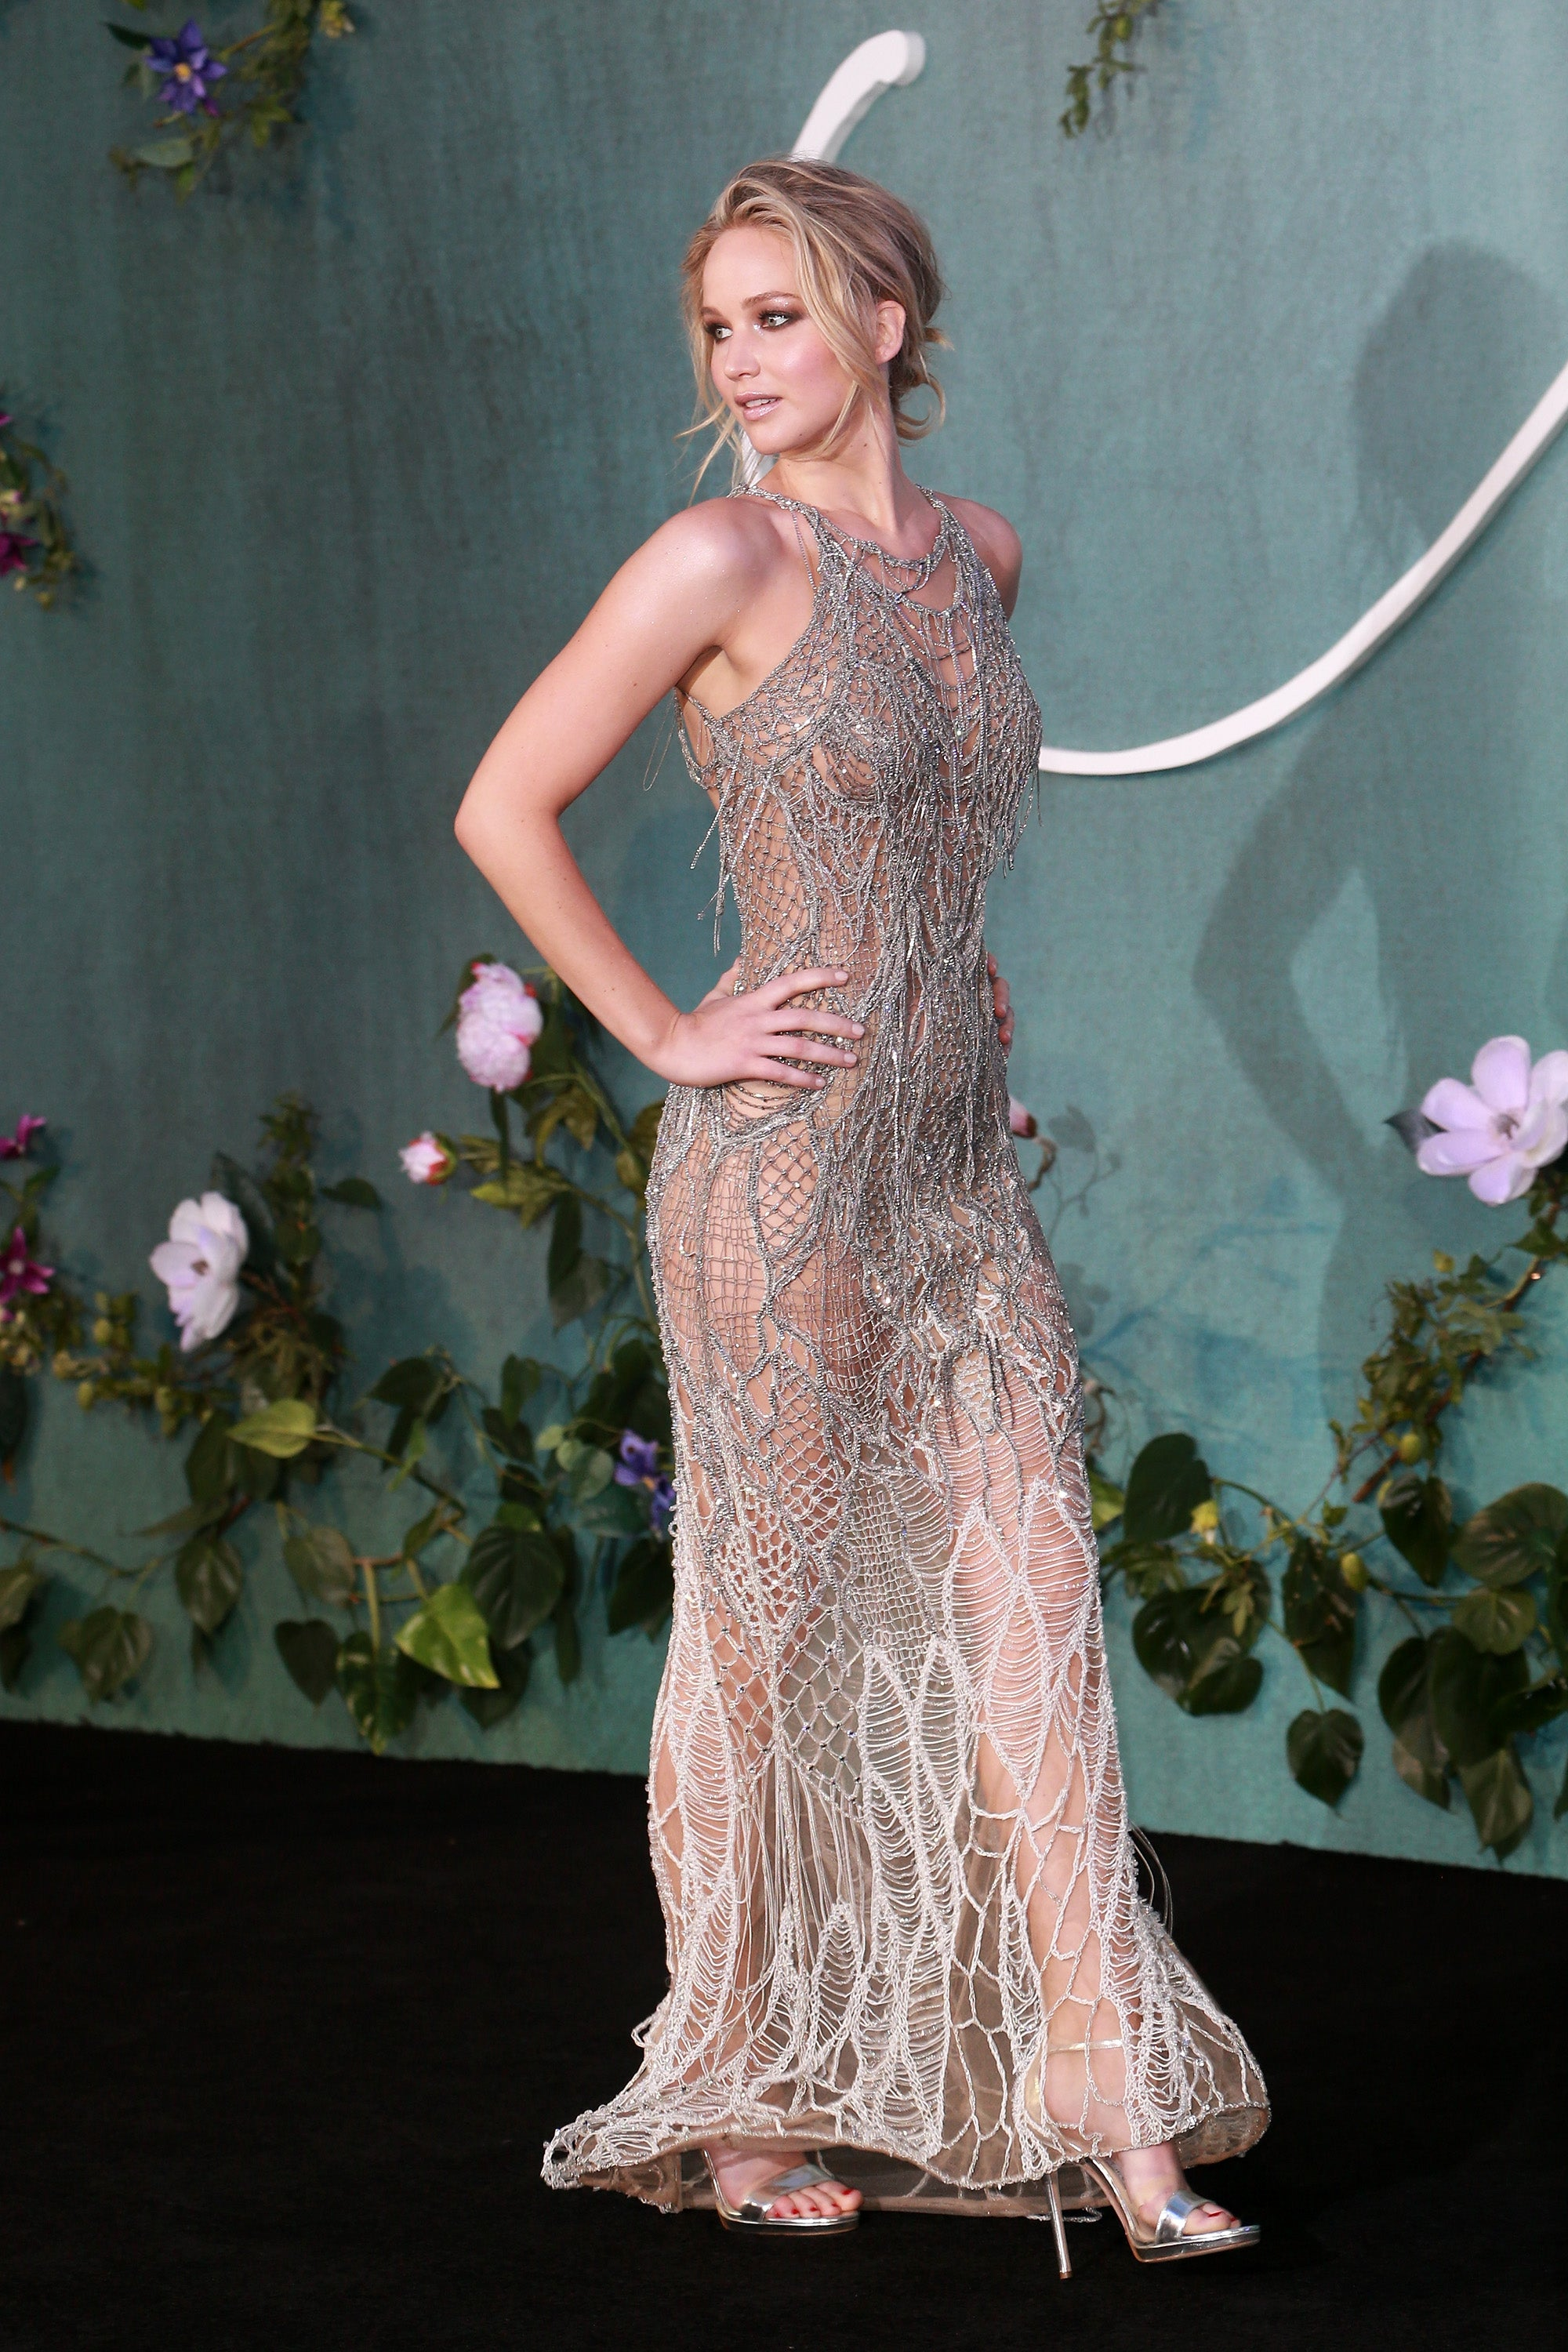 Jennifer Lawrence Turns Heads In Sheer Silver Gown At